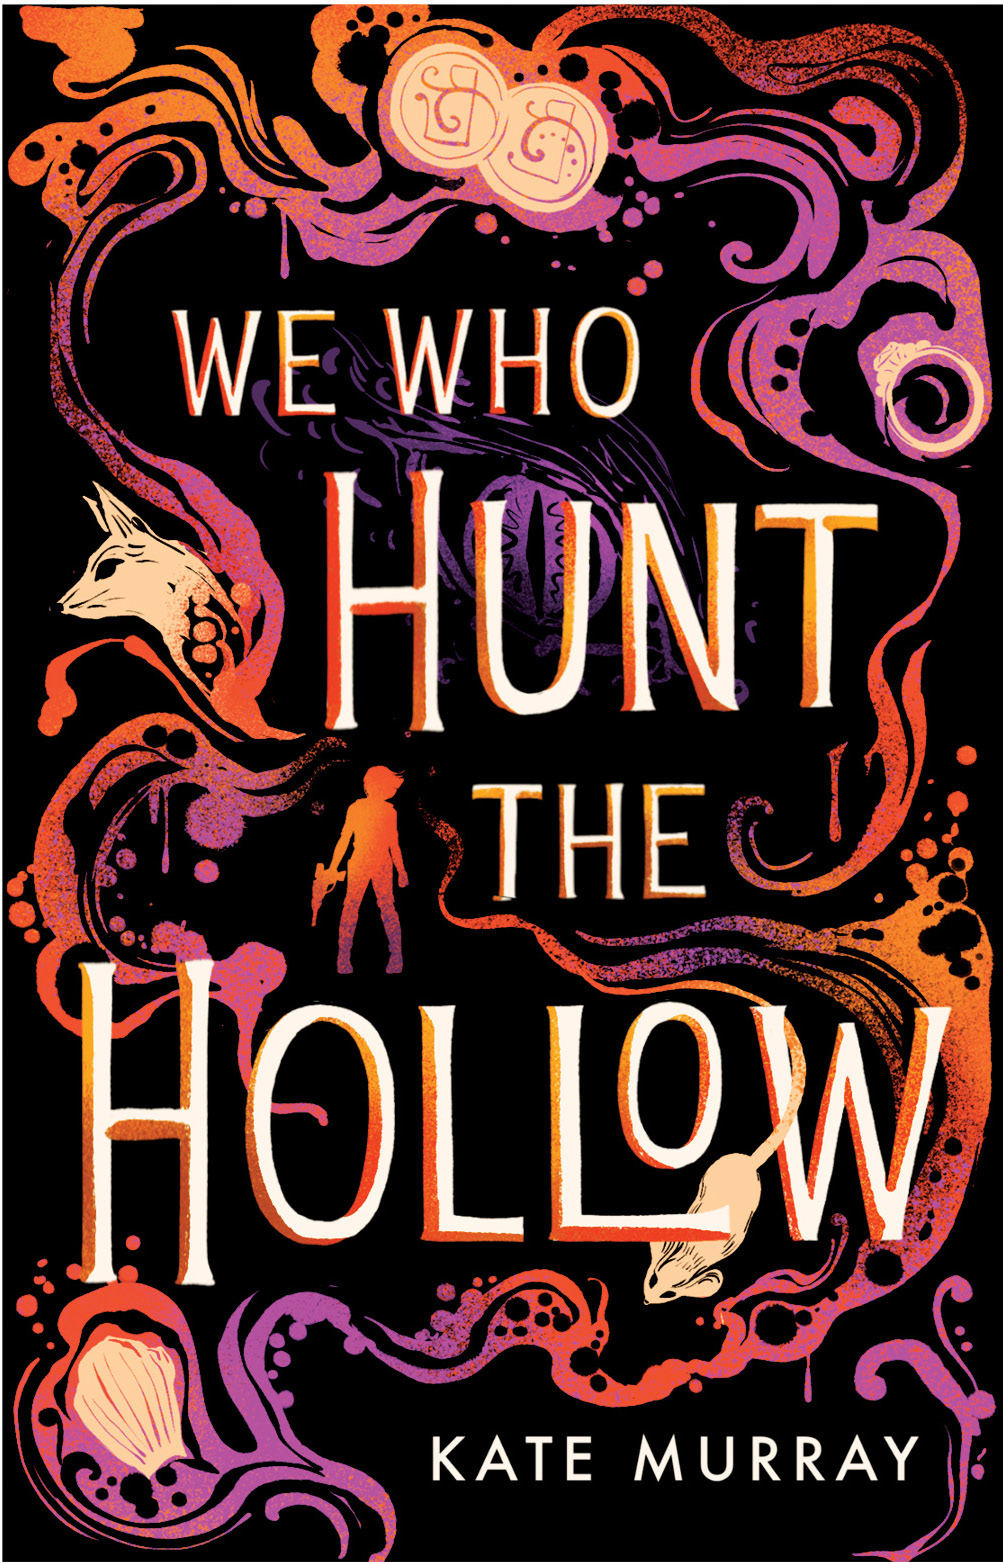 We Who Hunt The Hollow